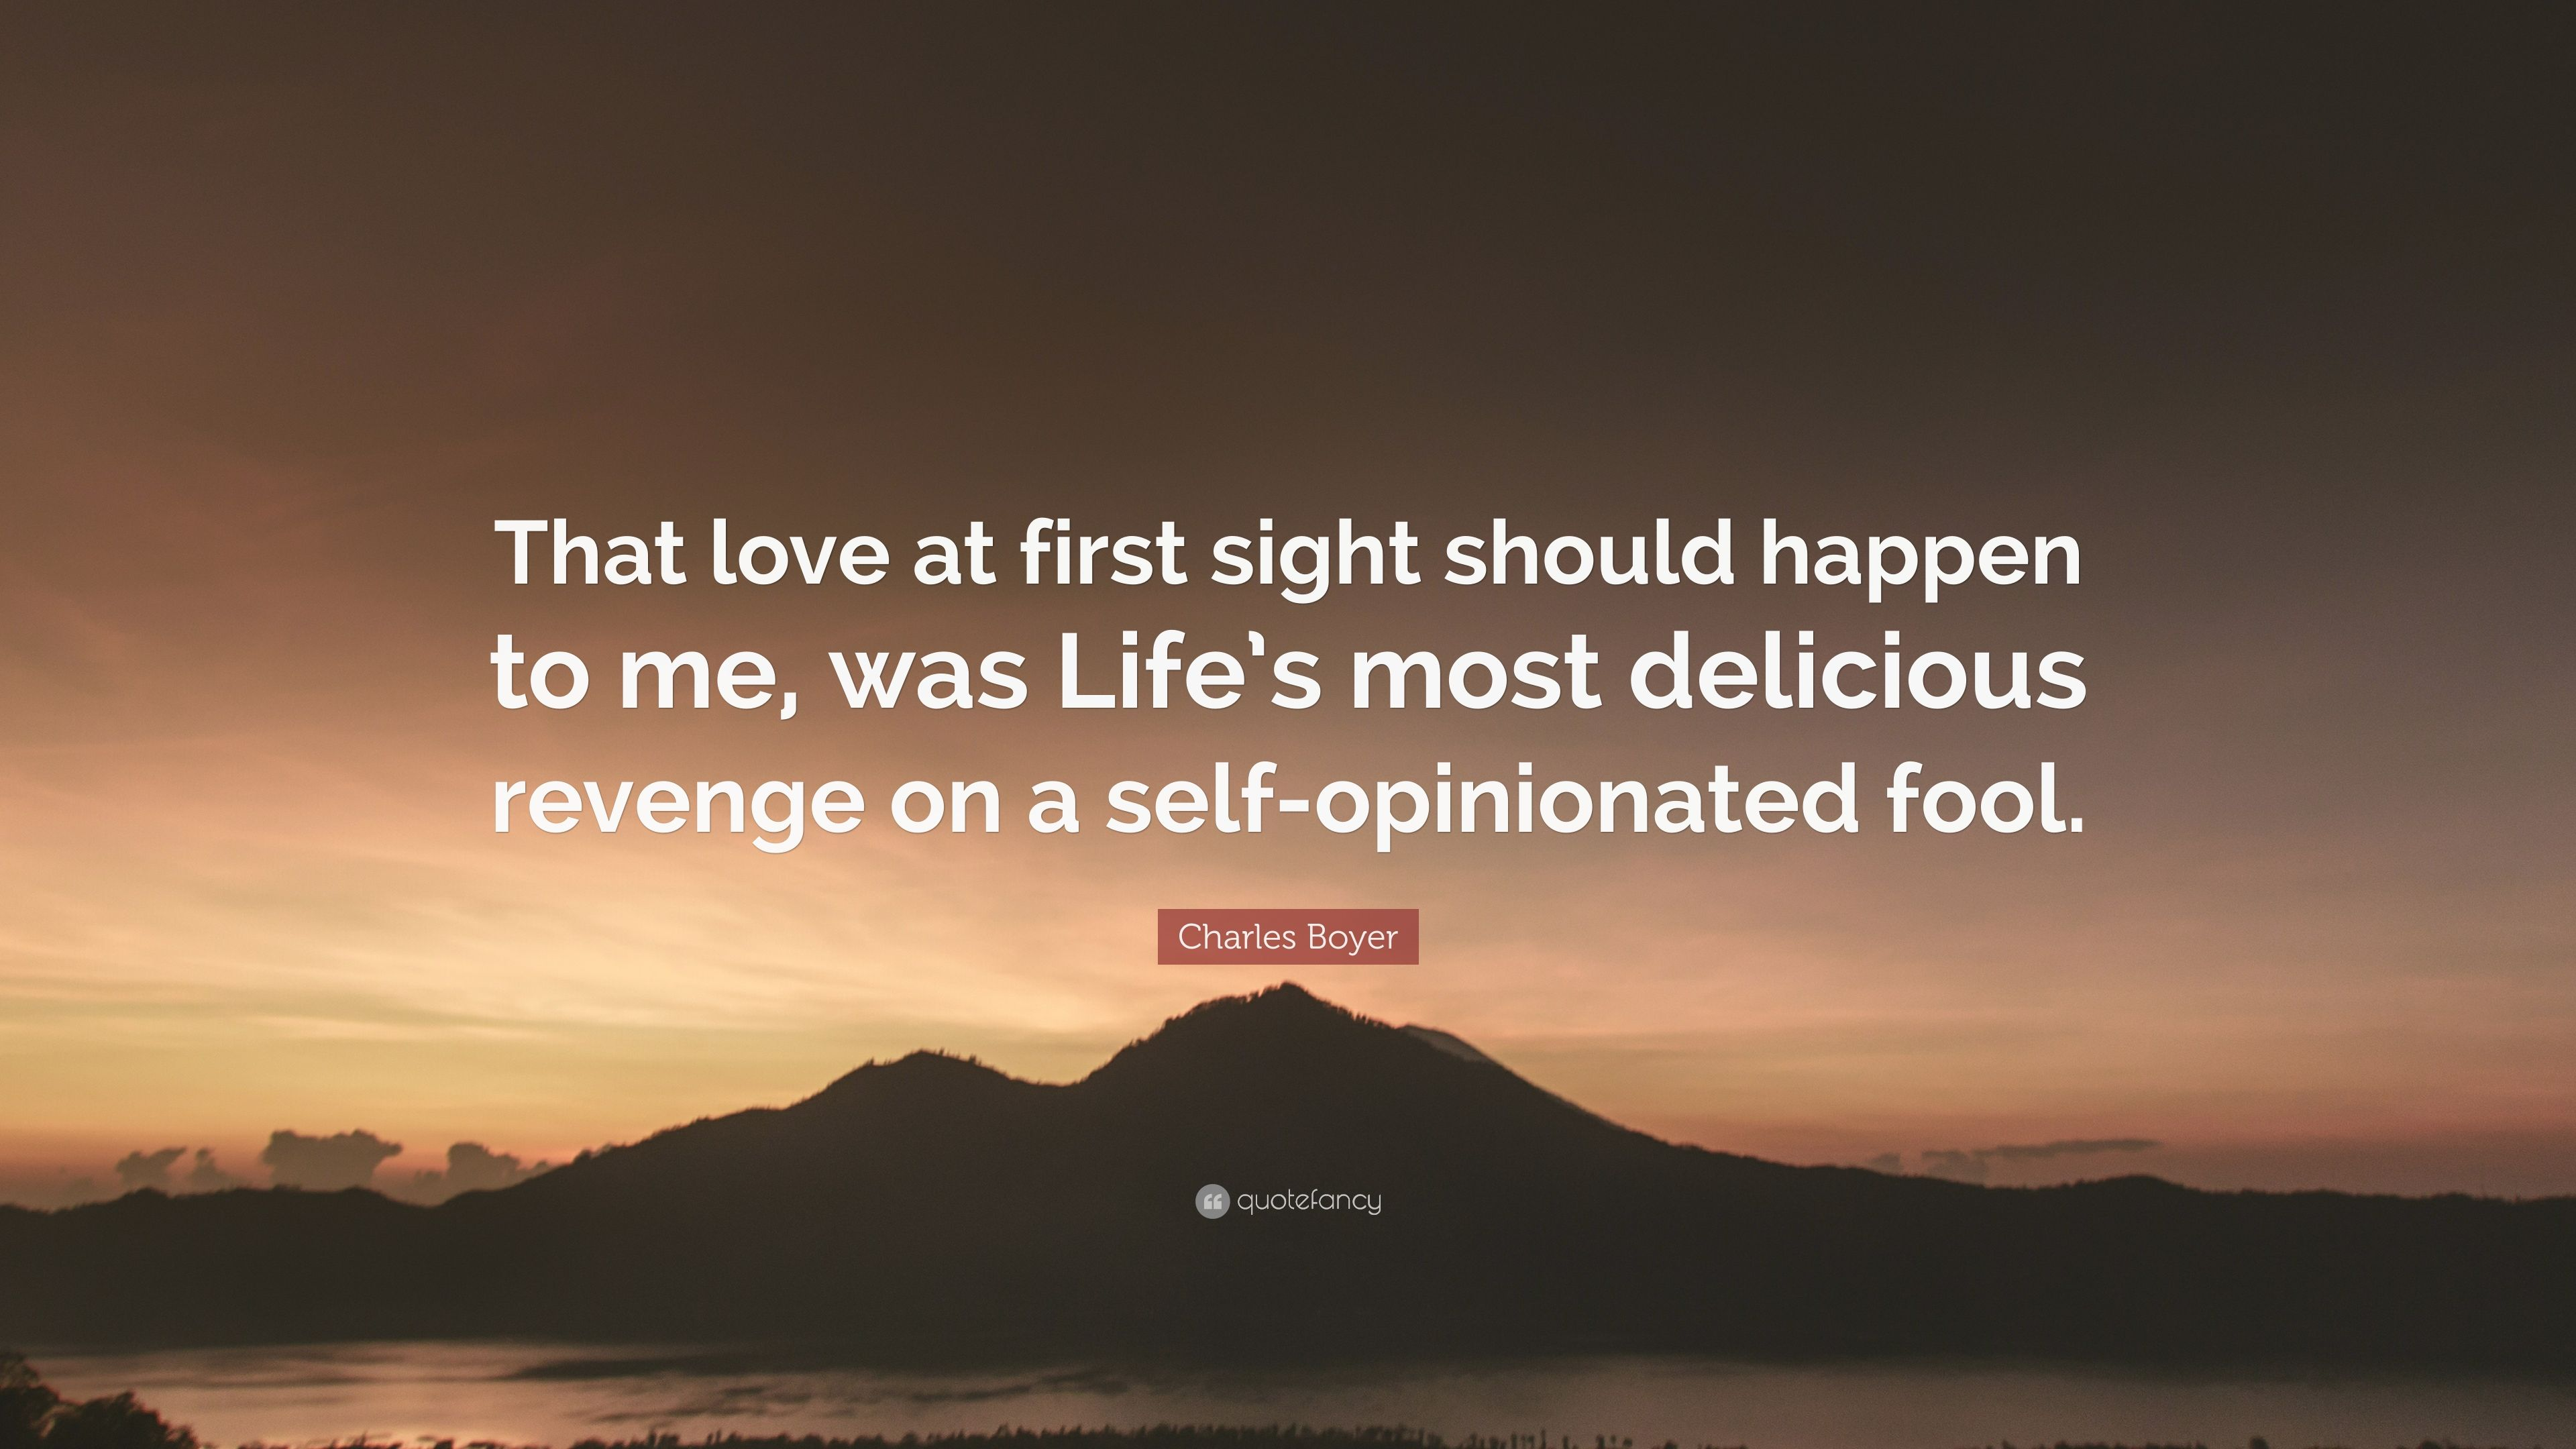 Quotes About Love At First Site 100  Quotes About Love At First Sight   The Only True Love Is